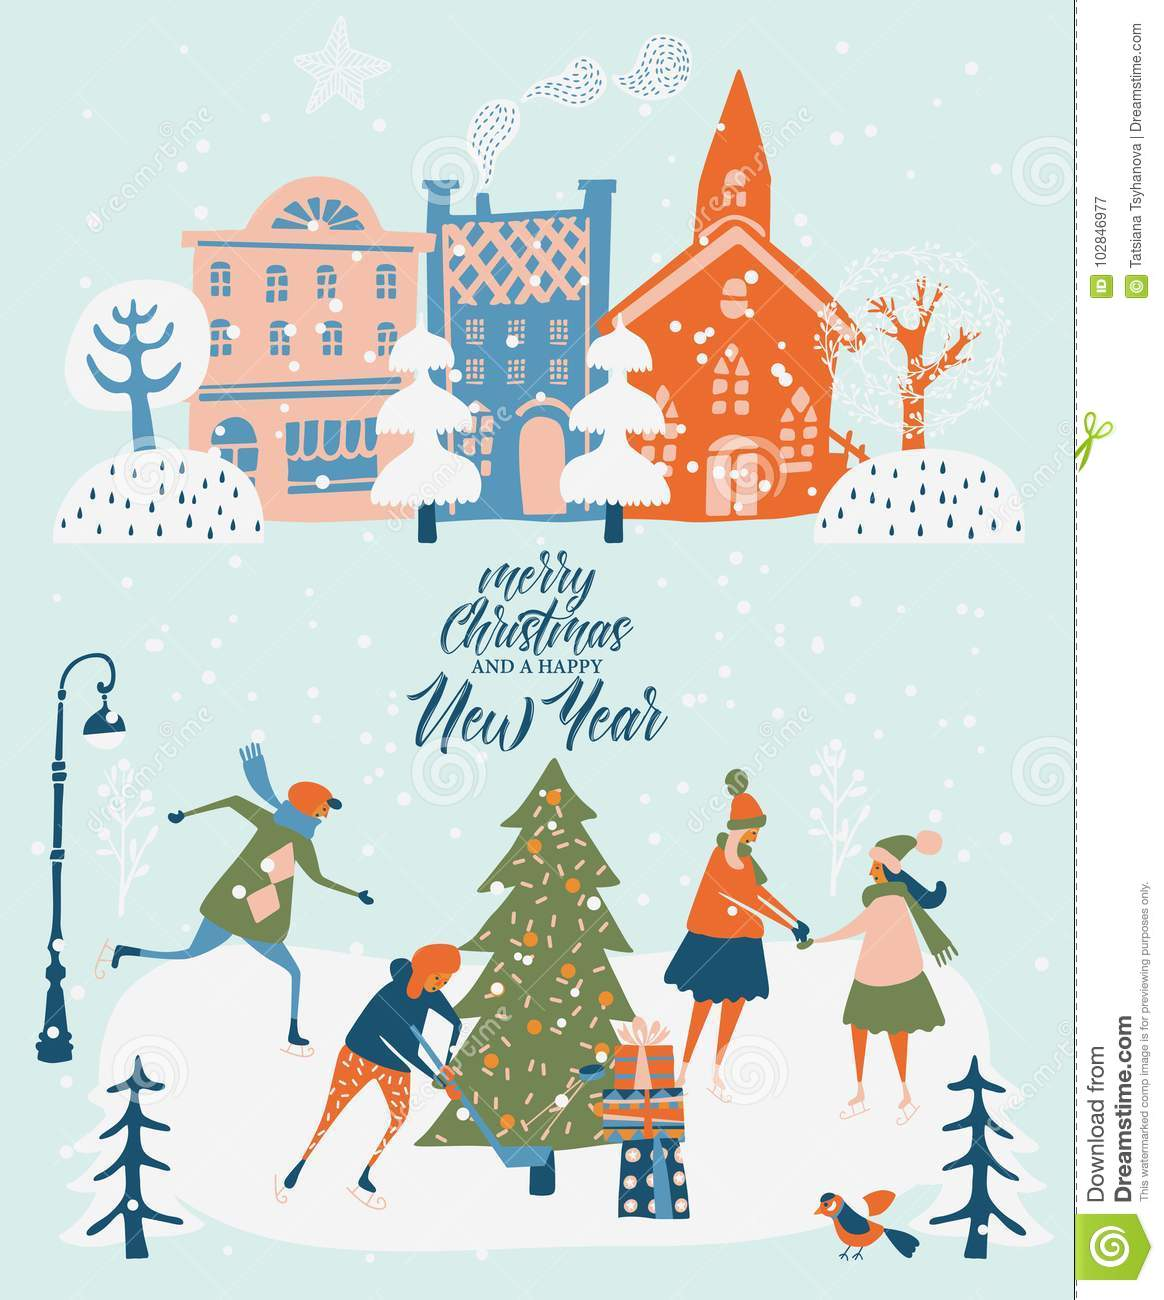 merry christmas and happy new year vector greeting card with winter games and people celebration